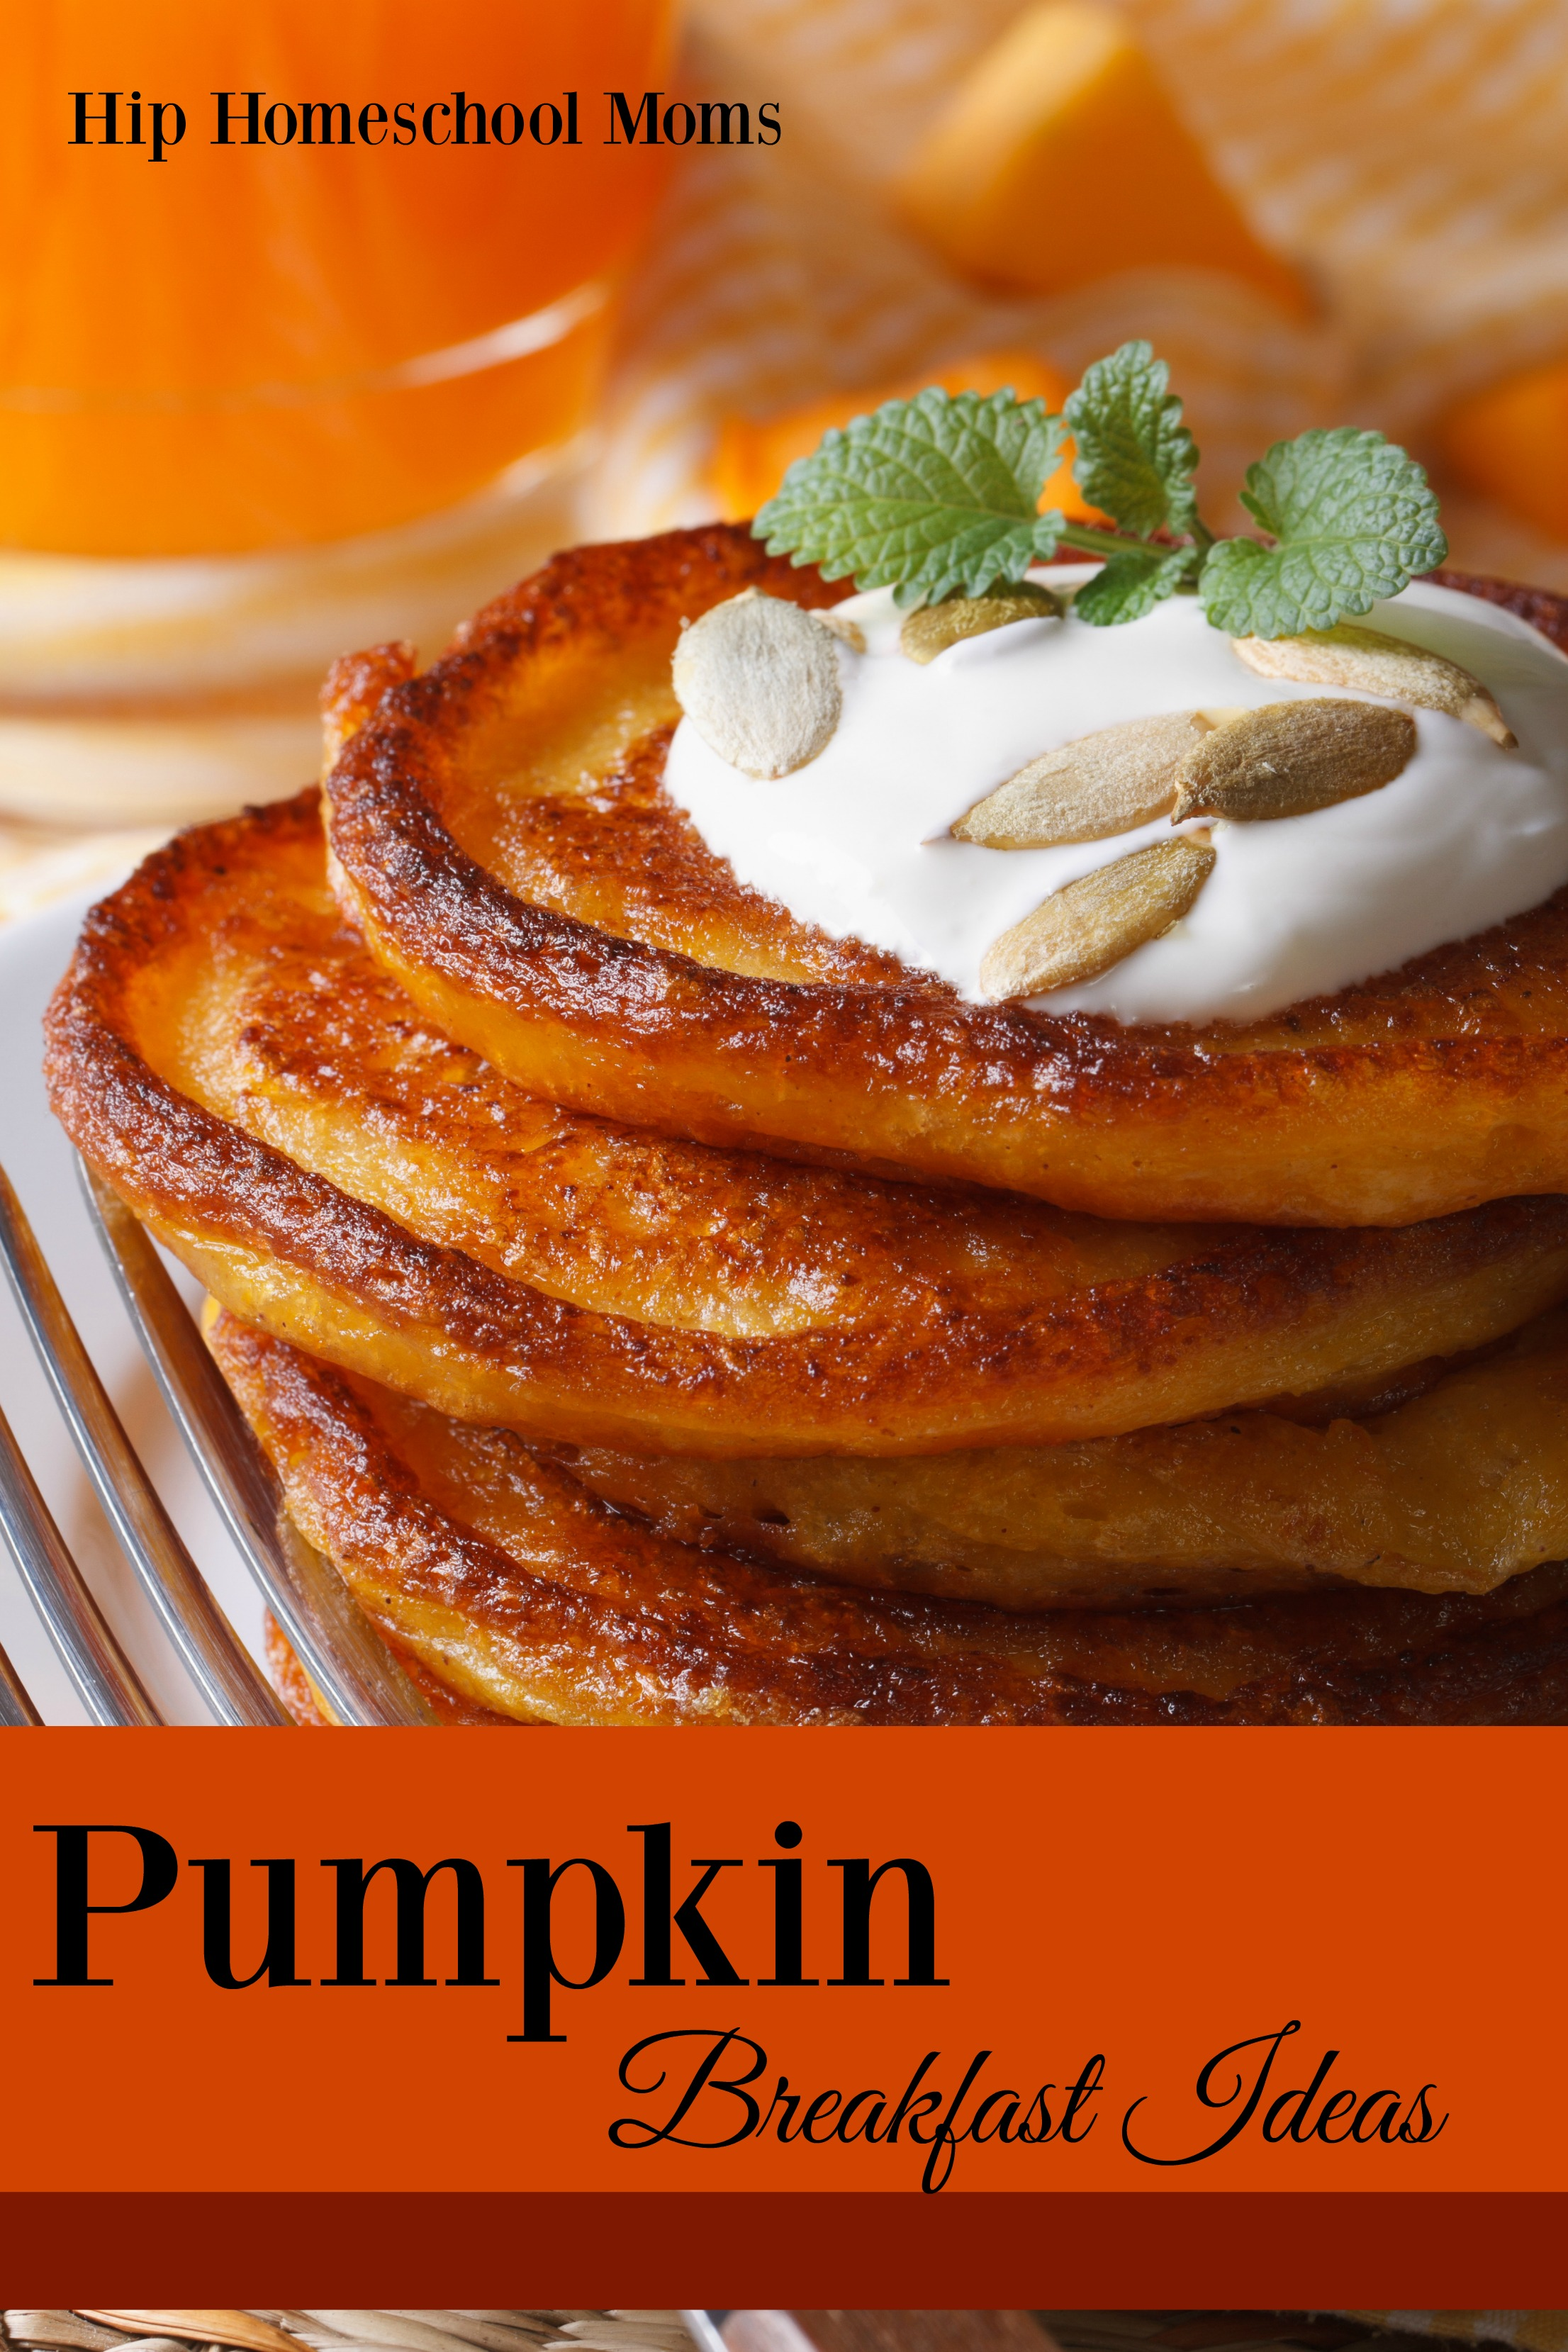 Pumpkin Breakfast Ideas